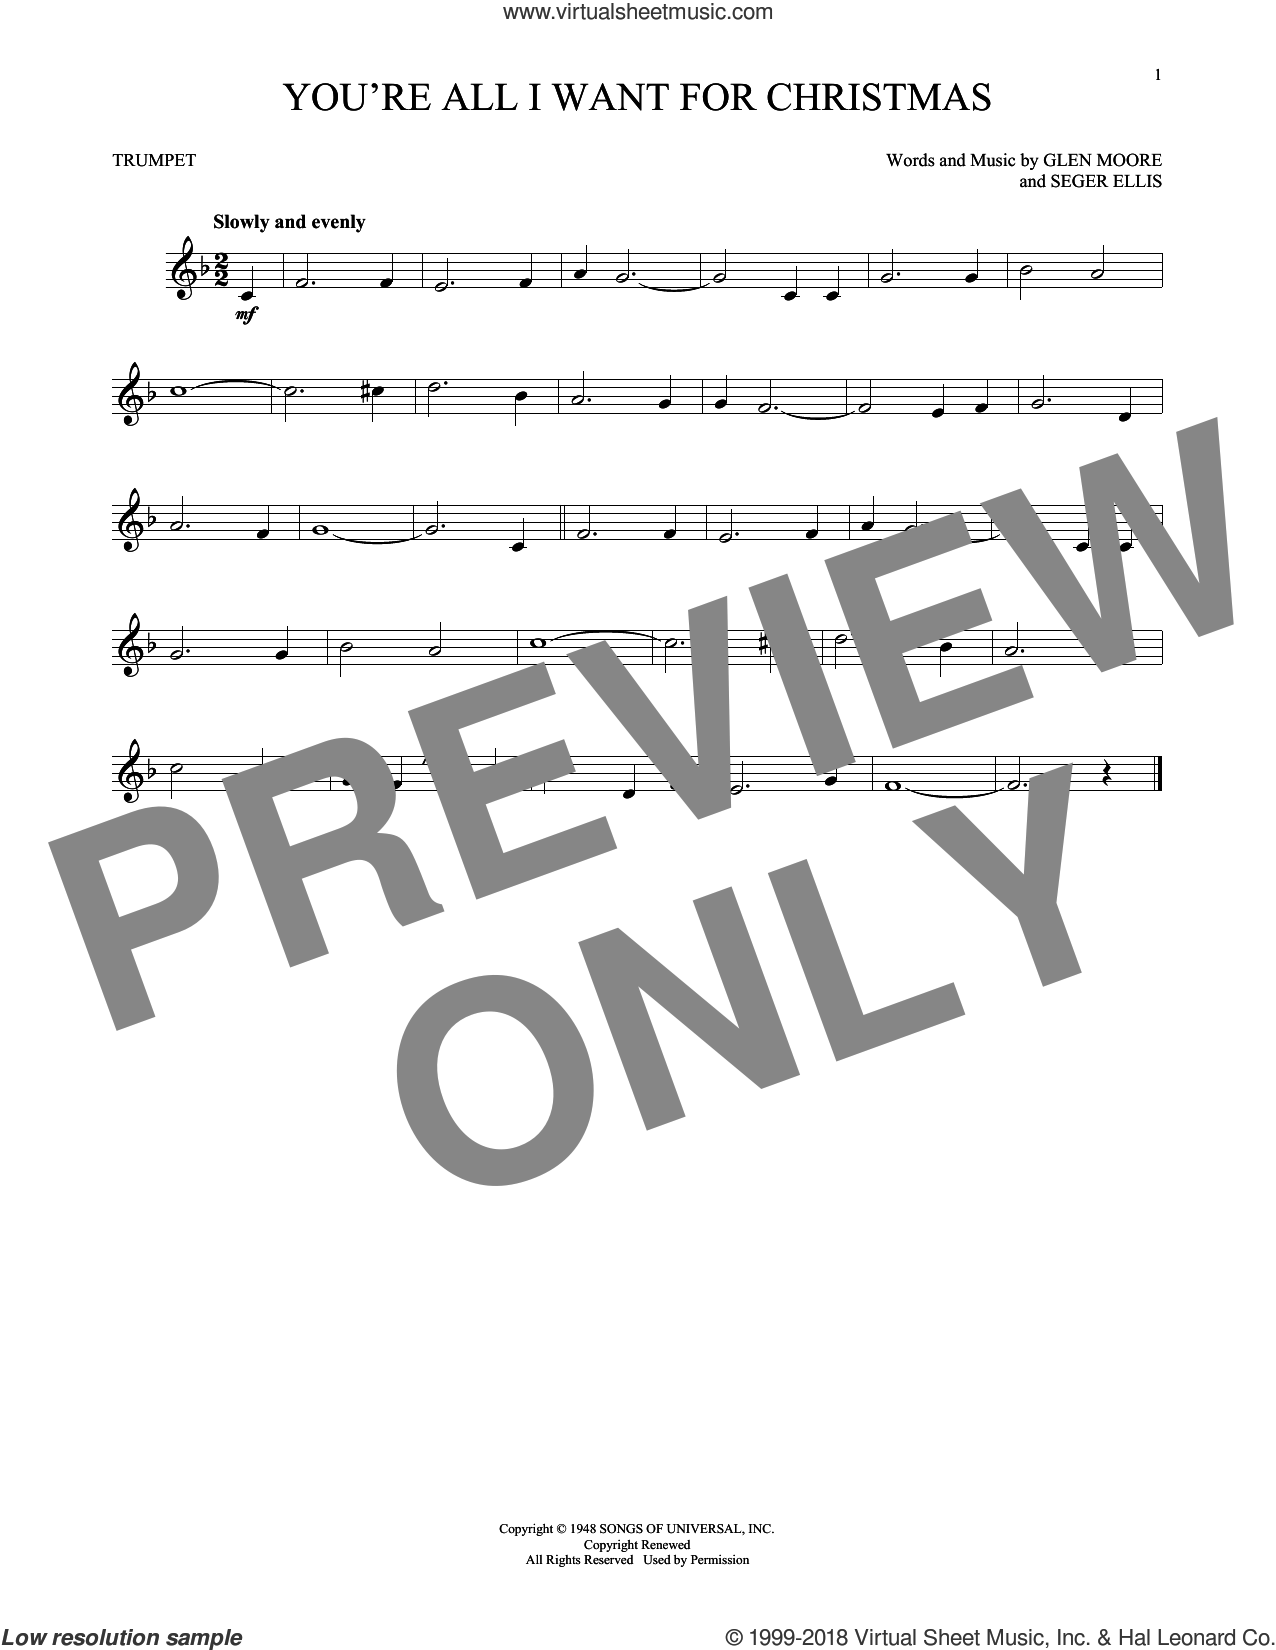 You're All I Want For Christmas sheet music for trumpet solo by Seger Ellis